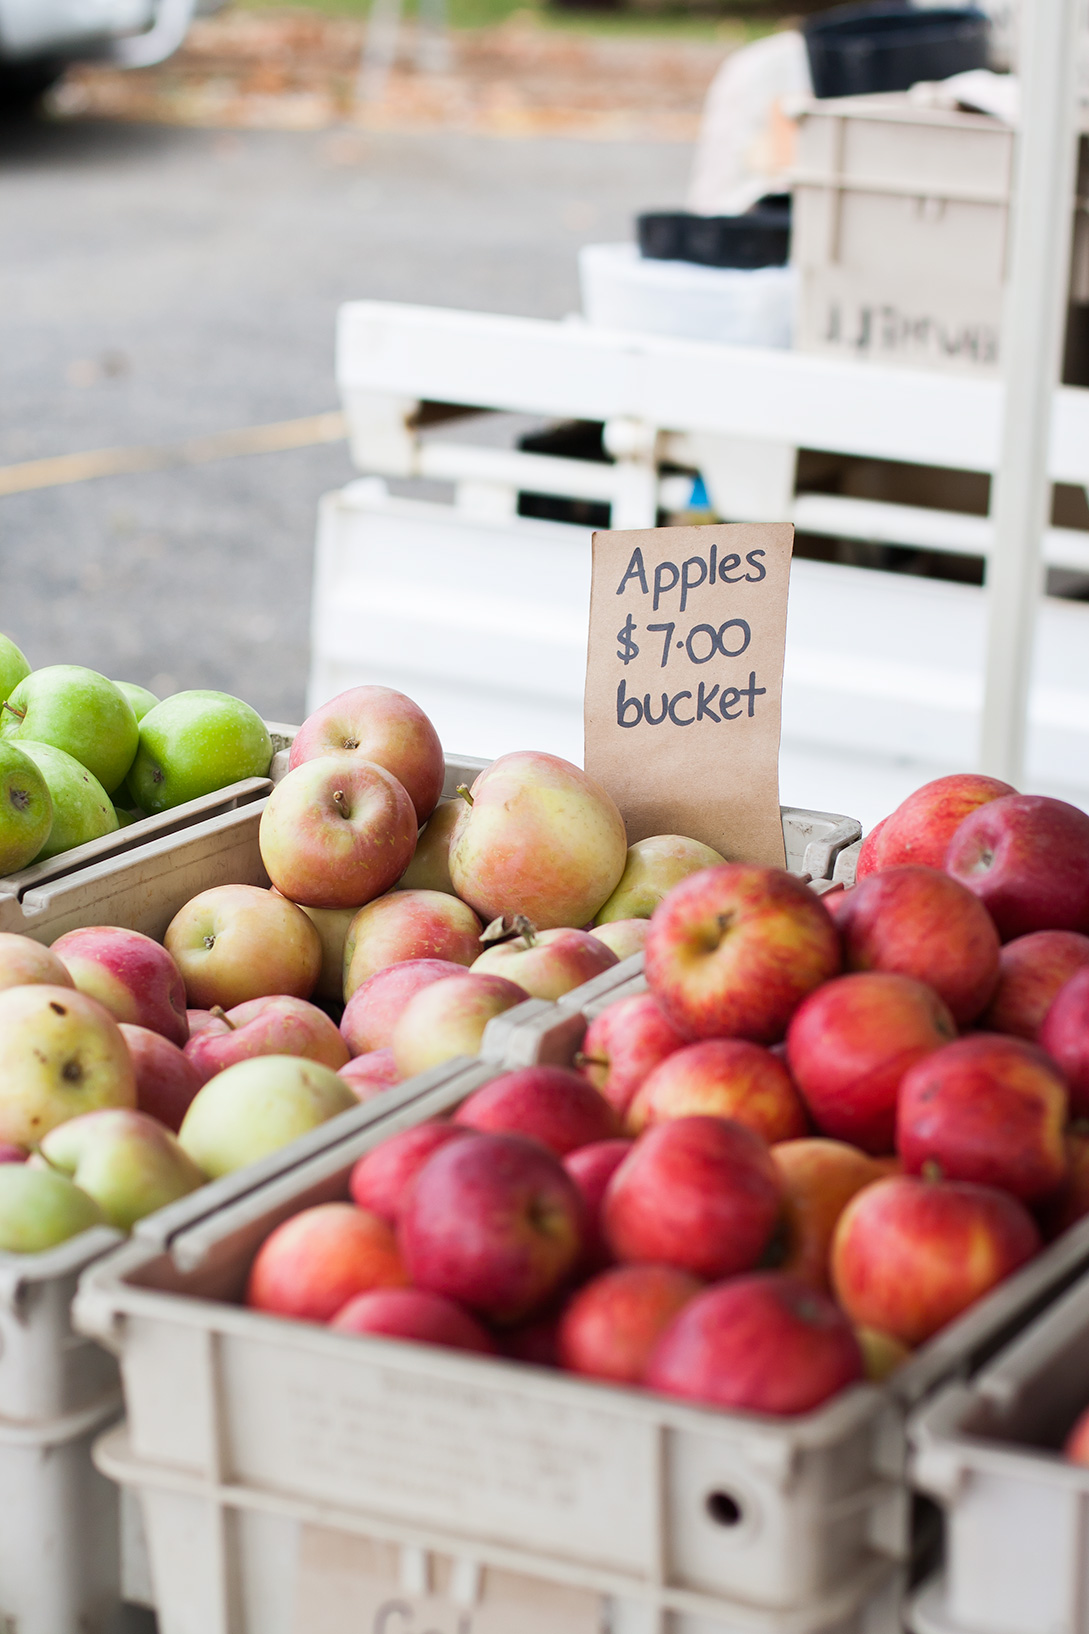 Millthorpe Market Apples